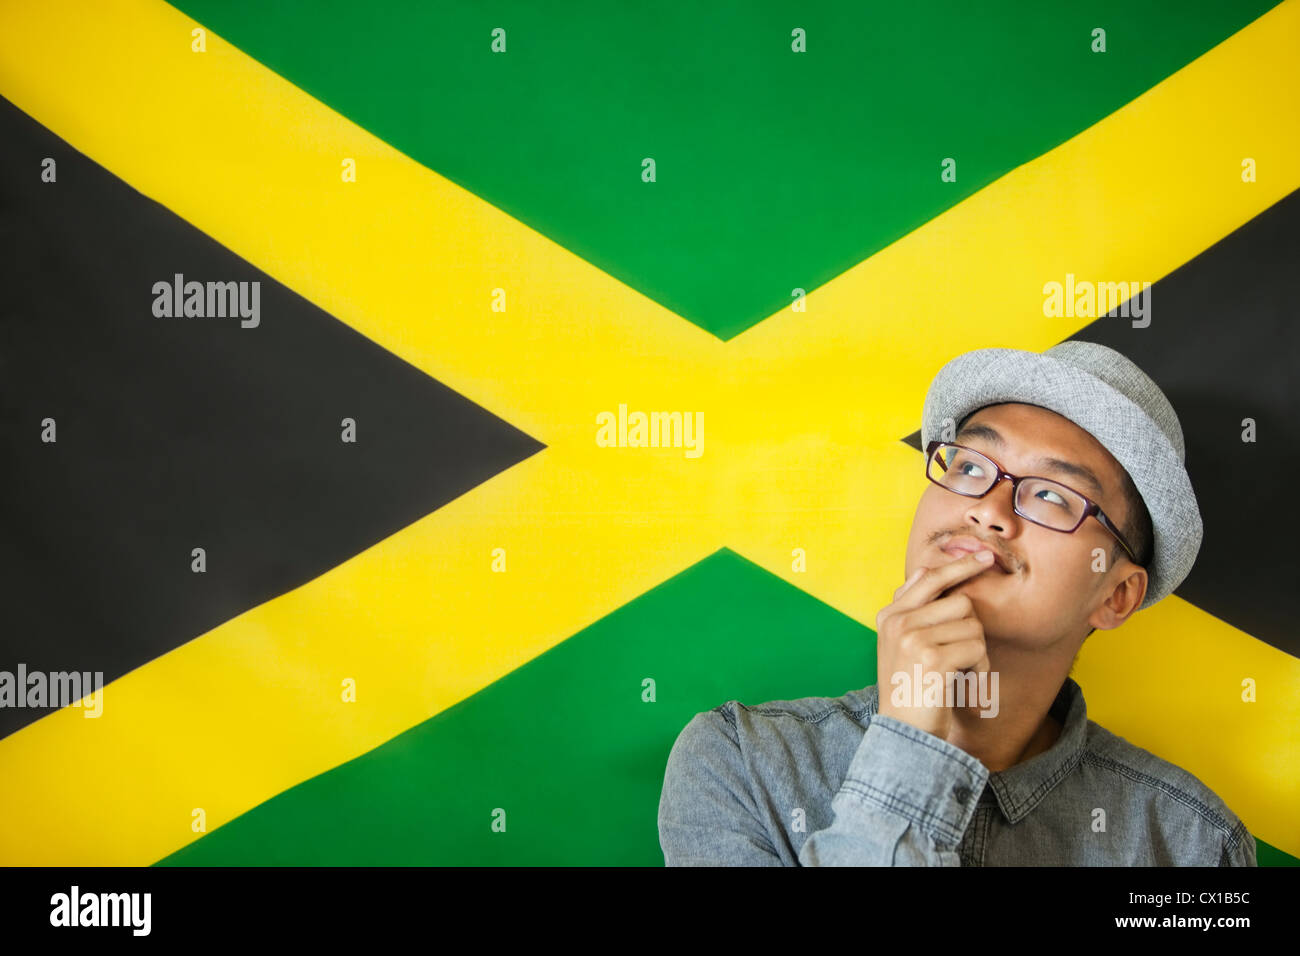 Thoughtful man against Jamaican flag - Stock Image